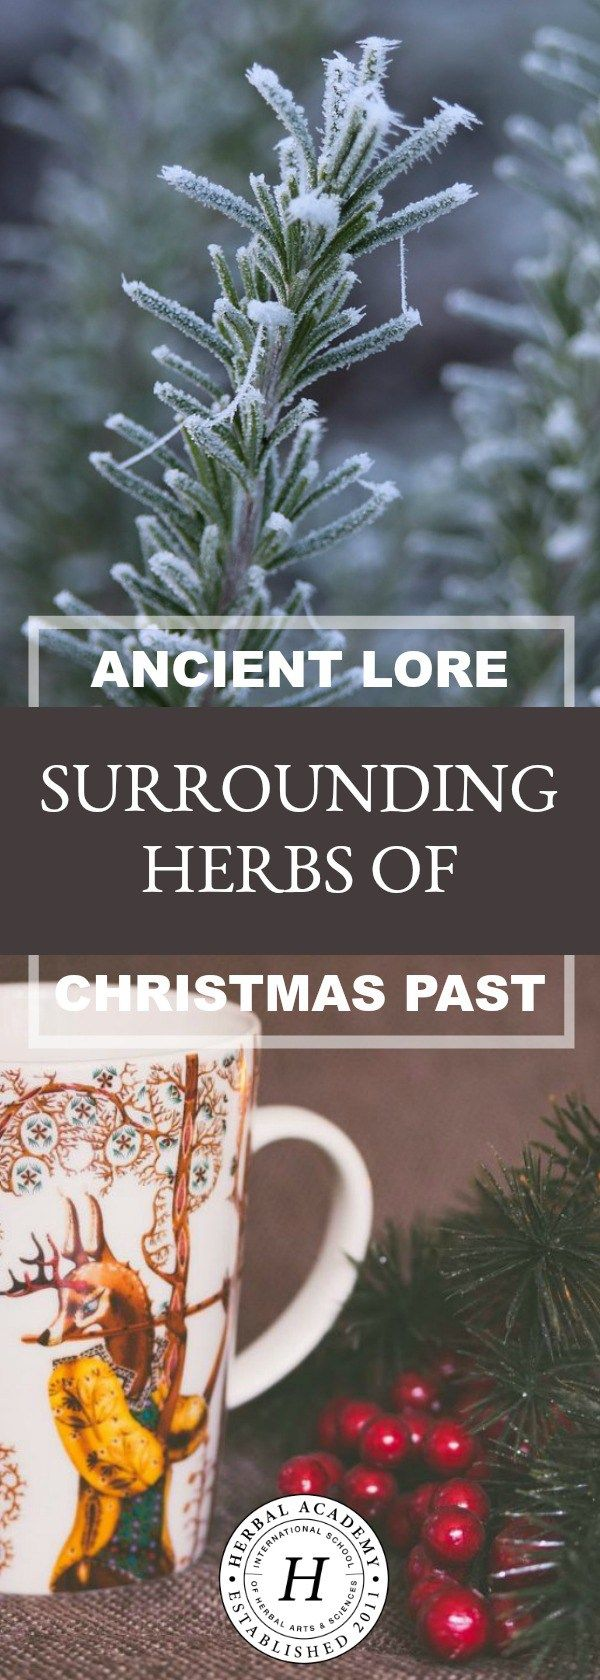 Ancient Lore Surrounding Herbs Of Christmas Past | Herbal Academy | Have you ever wondered about the ancient lore surrounding the herbs of Christmas past? Here are several entertaining short stories for you to enjoy!